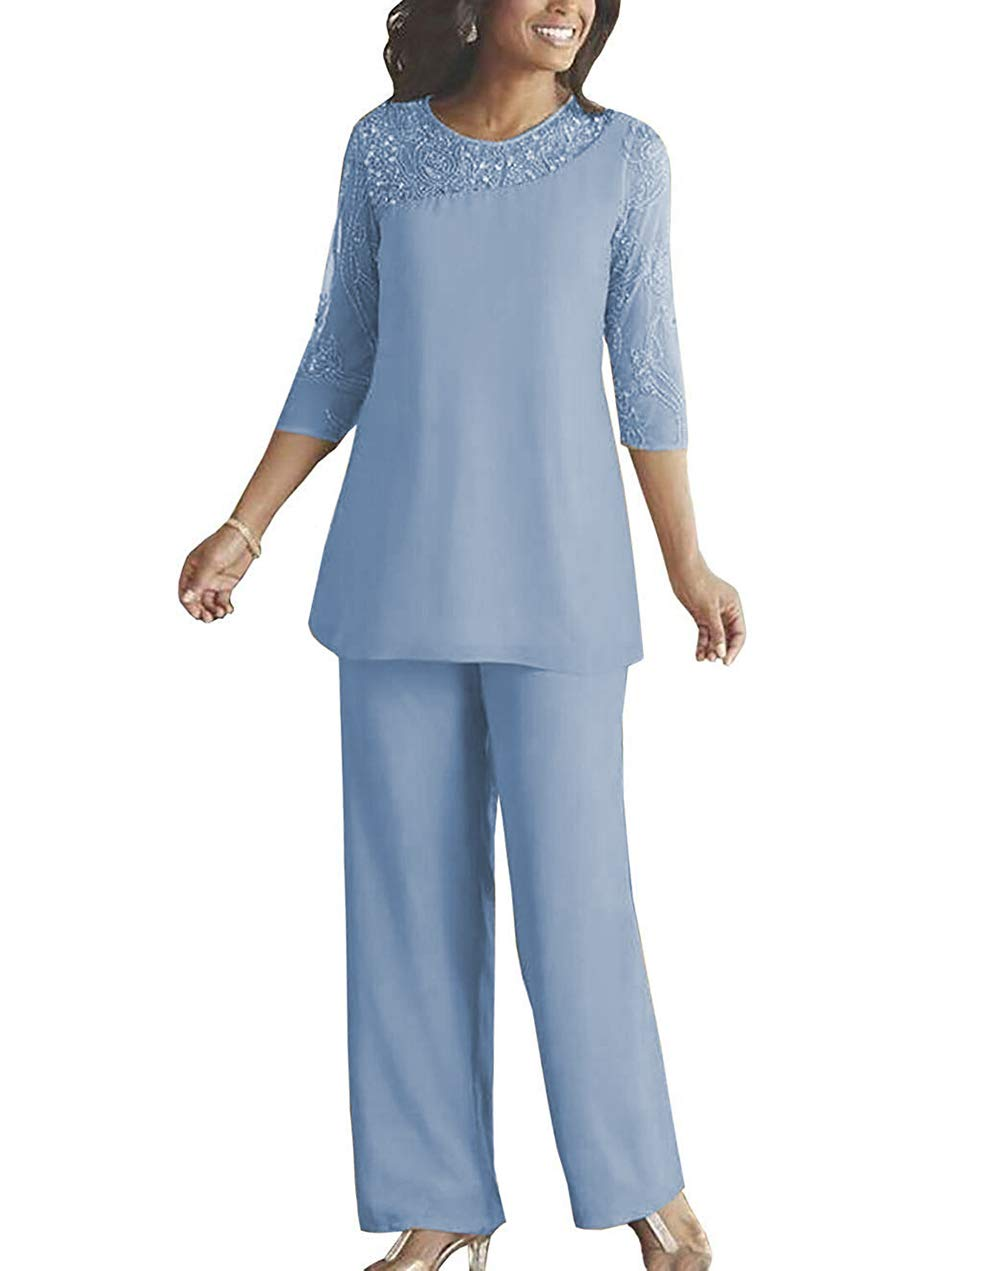 fitty lell women s chiffon beaded mother of bride pant suits dress long sleeves wedding party gown us22 plus light blue fitty lell women s chiffon beaded mother of bride pant suits dress long sleeves wedding party gown us22 plus light blue